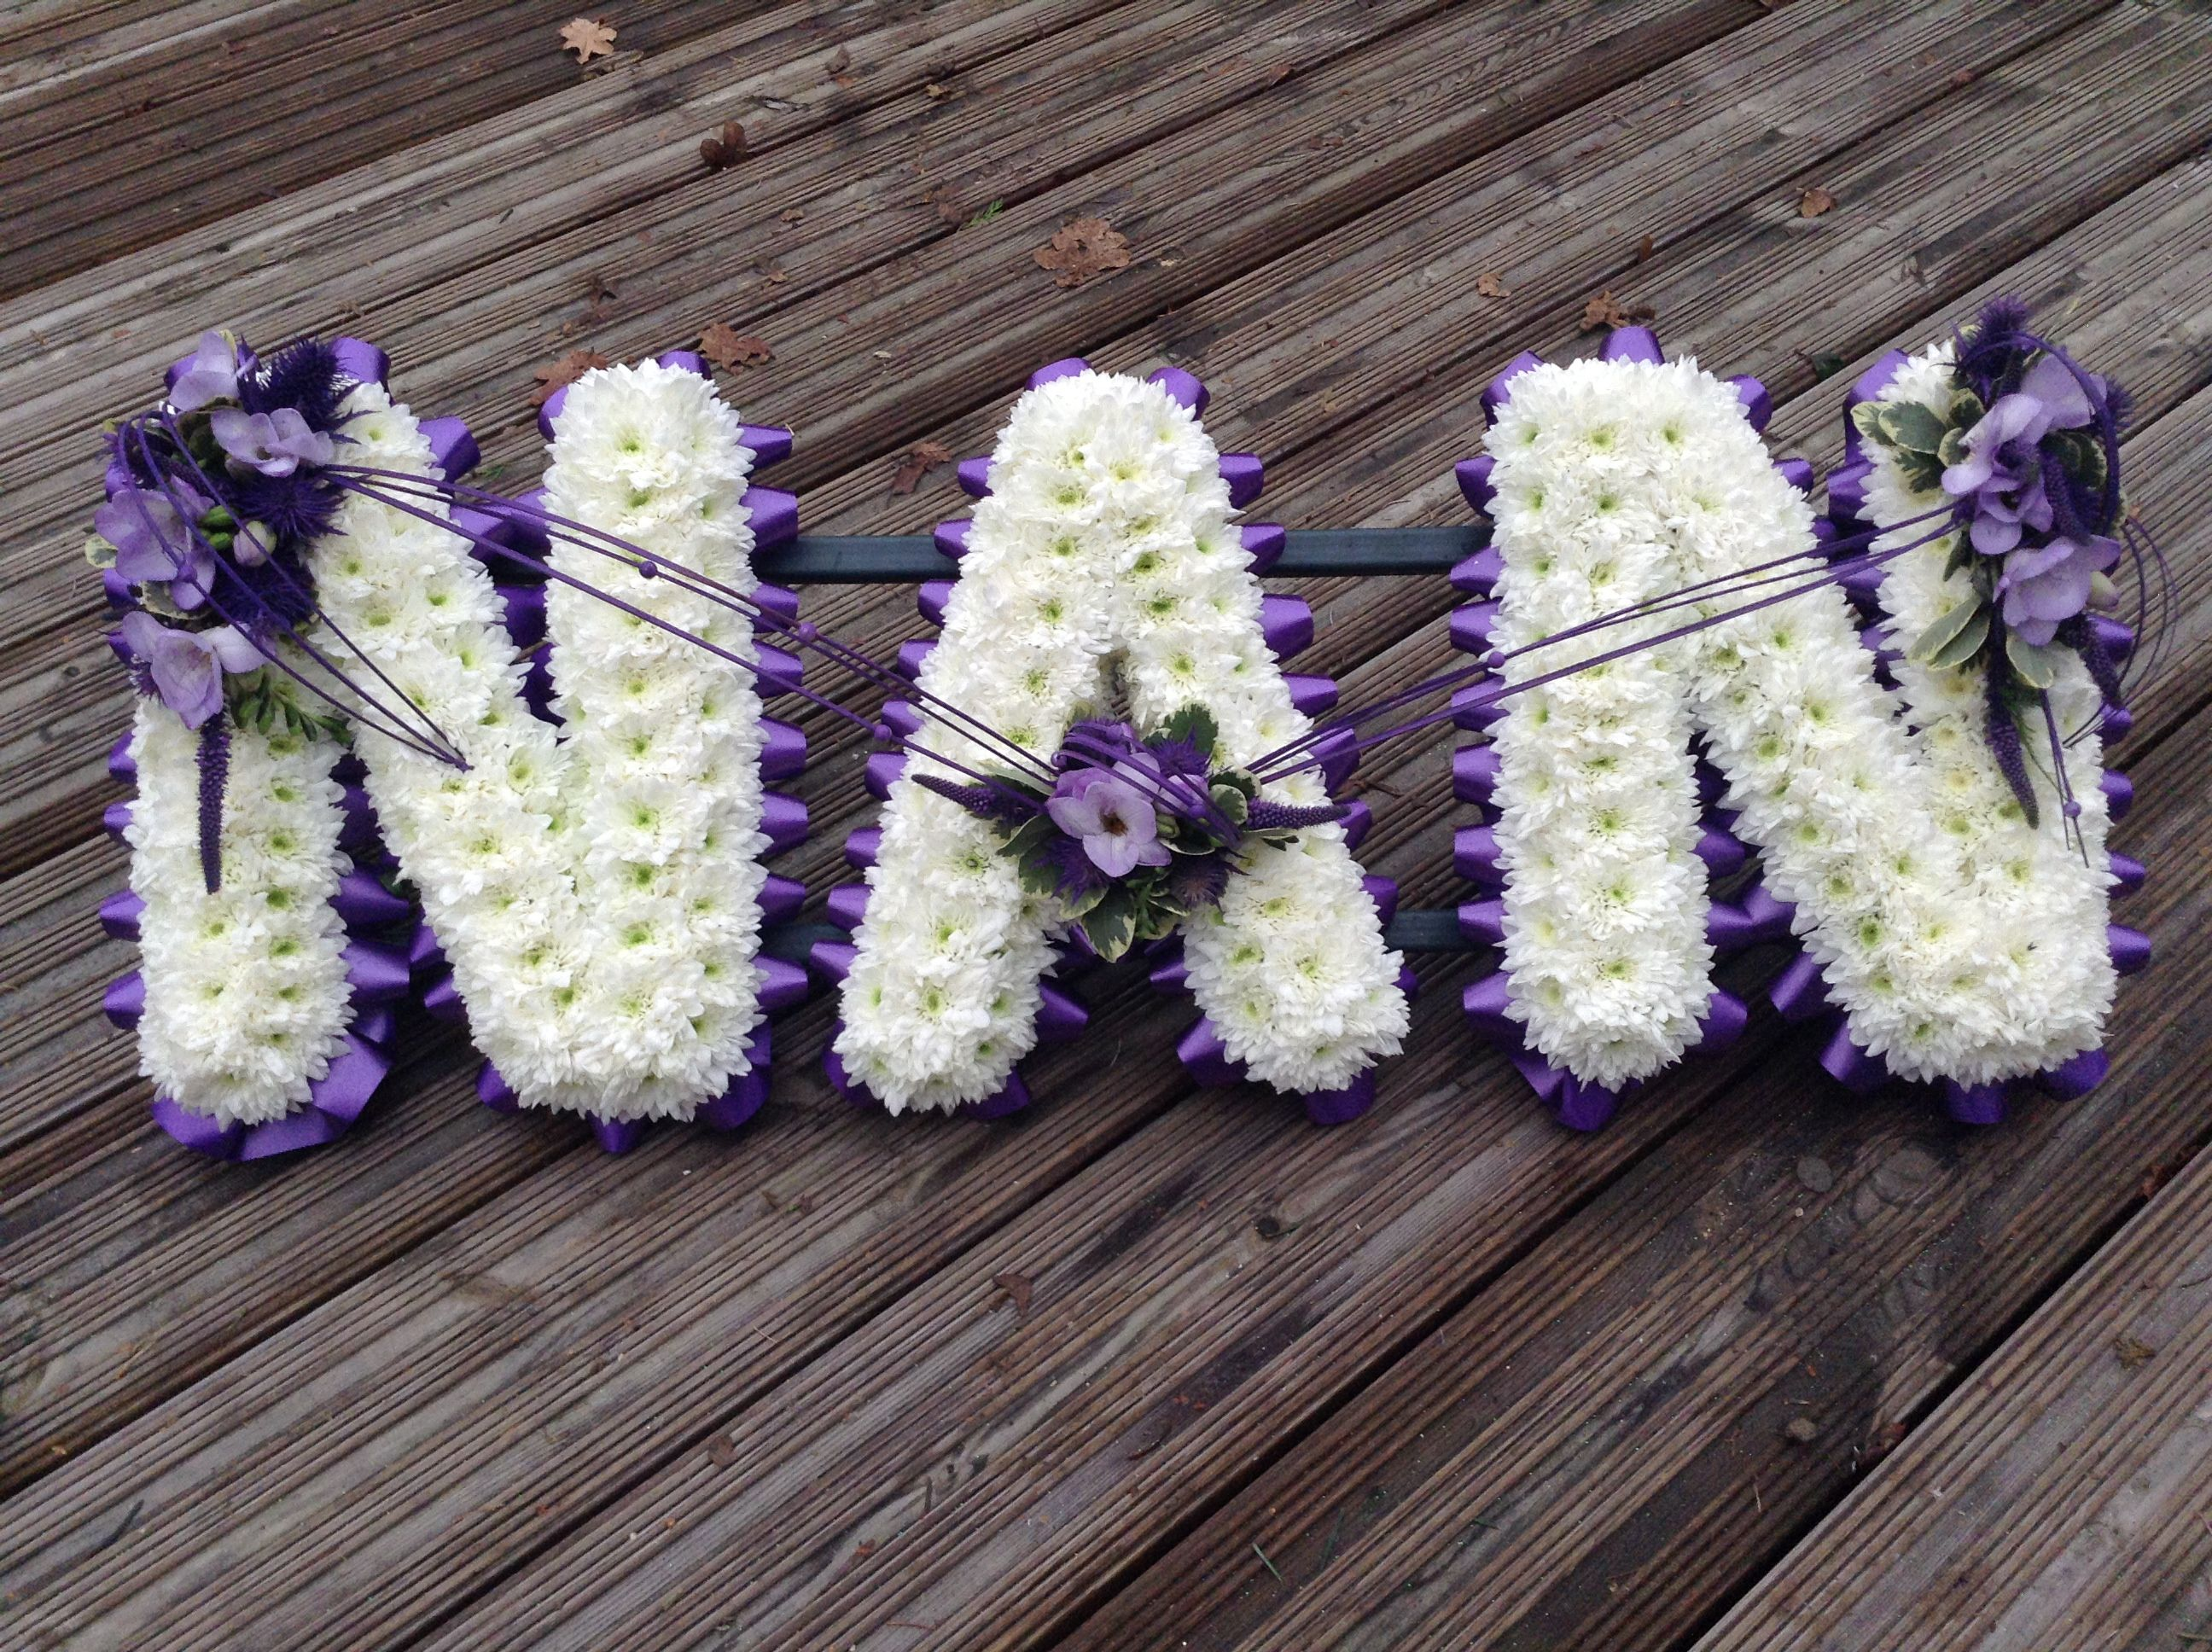 Best 10 funeral flowers uk ideas on pinterest flowers for funeral flowers nan funeral flower letter tribute purple and lilac thefloralartstudio dhlflorist Choice Image